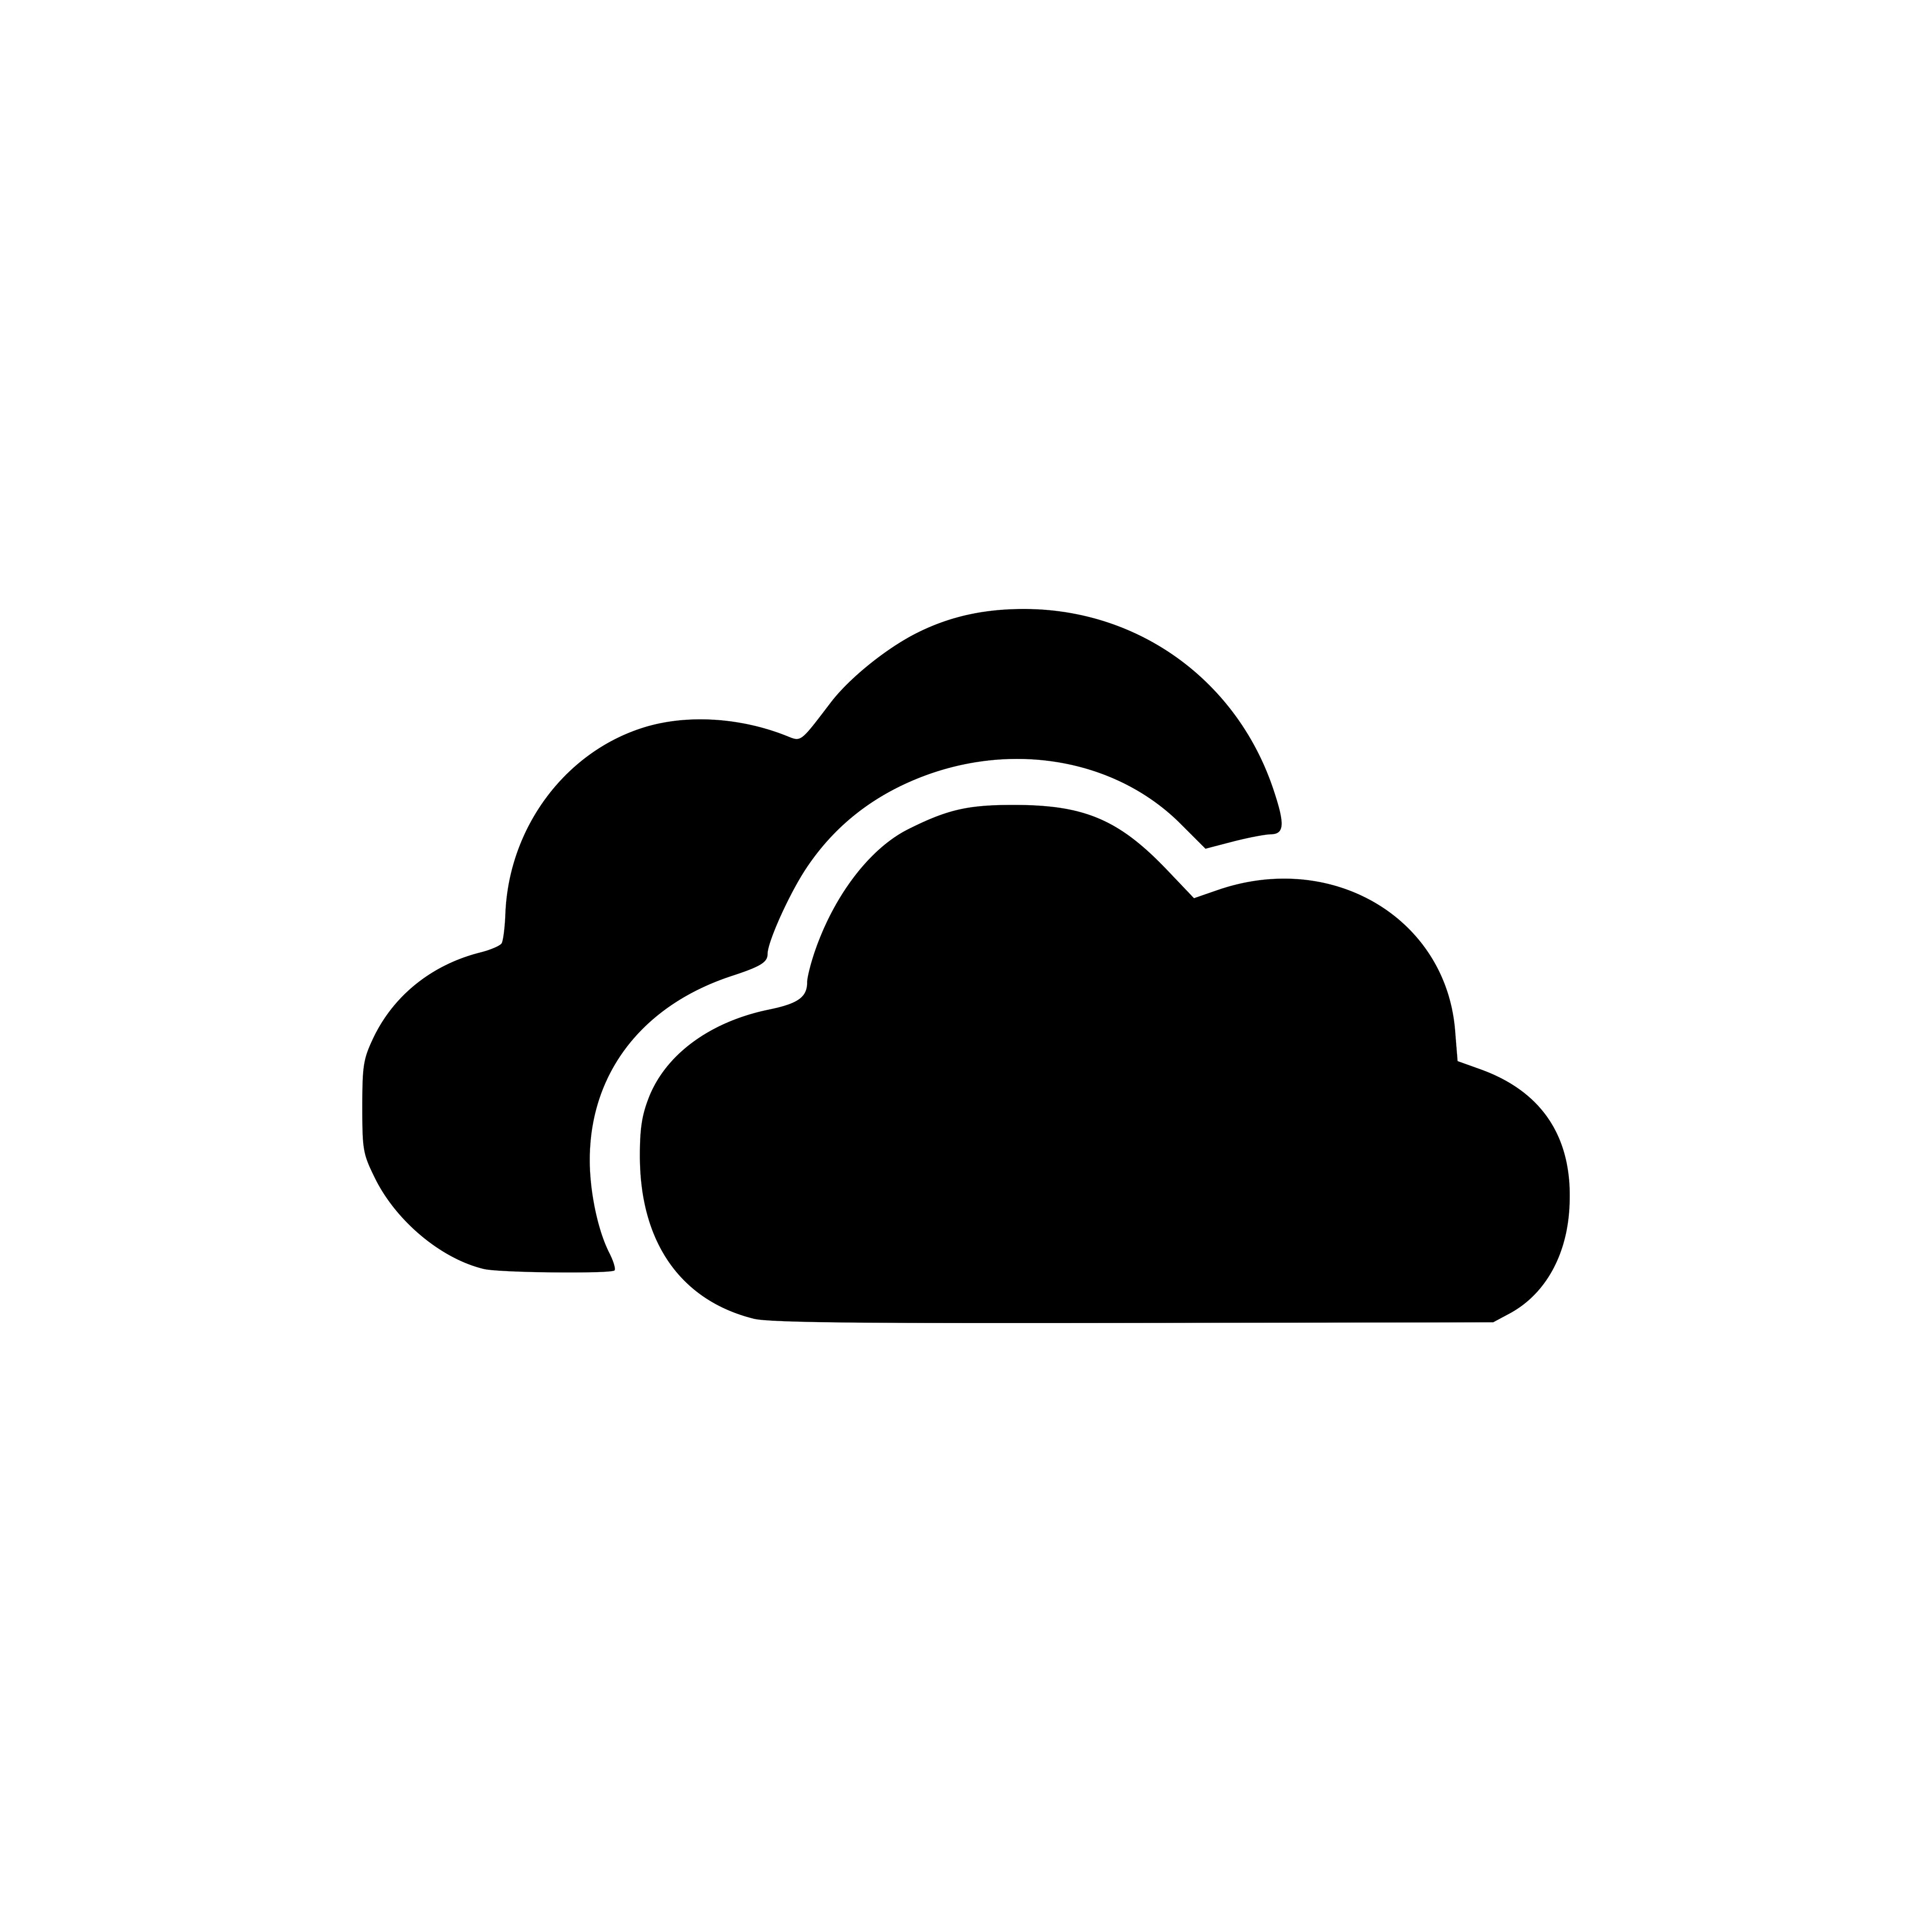 Black Icon Png #198289.